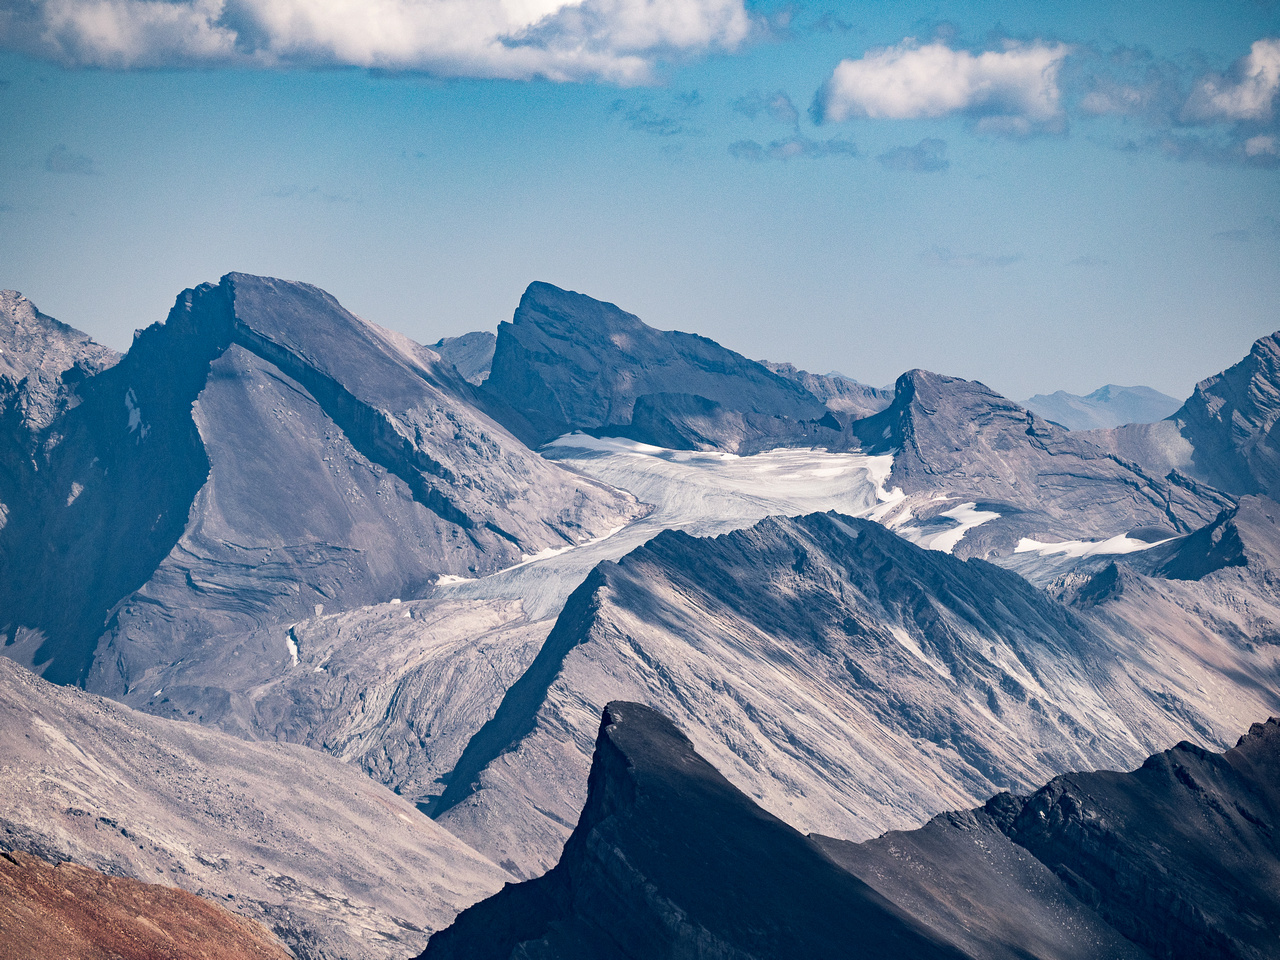 Dip Slope (L) and Deluc (C) Peaks with their glaciers.